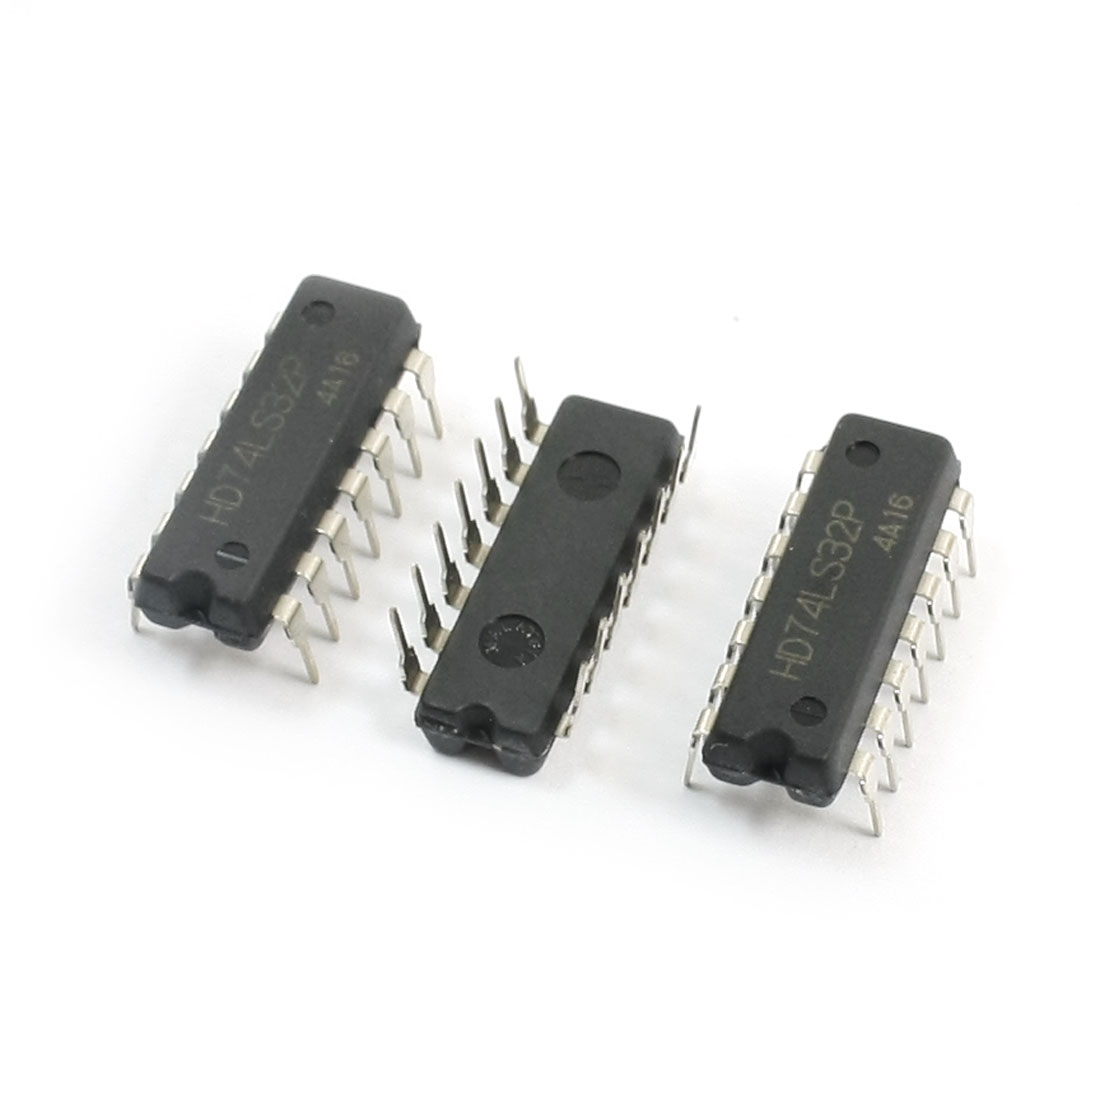 3Pcs 74LS32 DIP 14 Pins Quadruple 2-Input Positive AND Gates Semiconductor